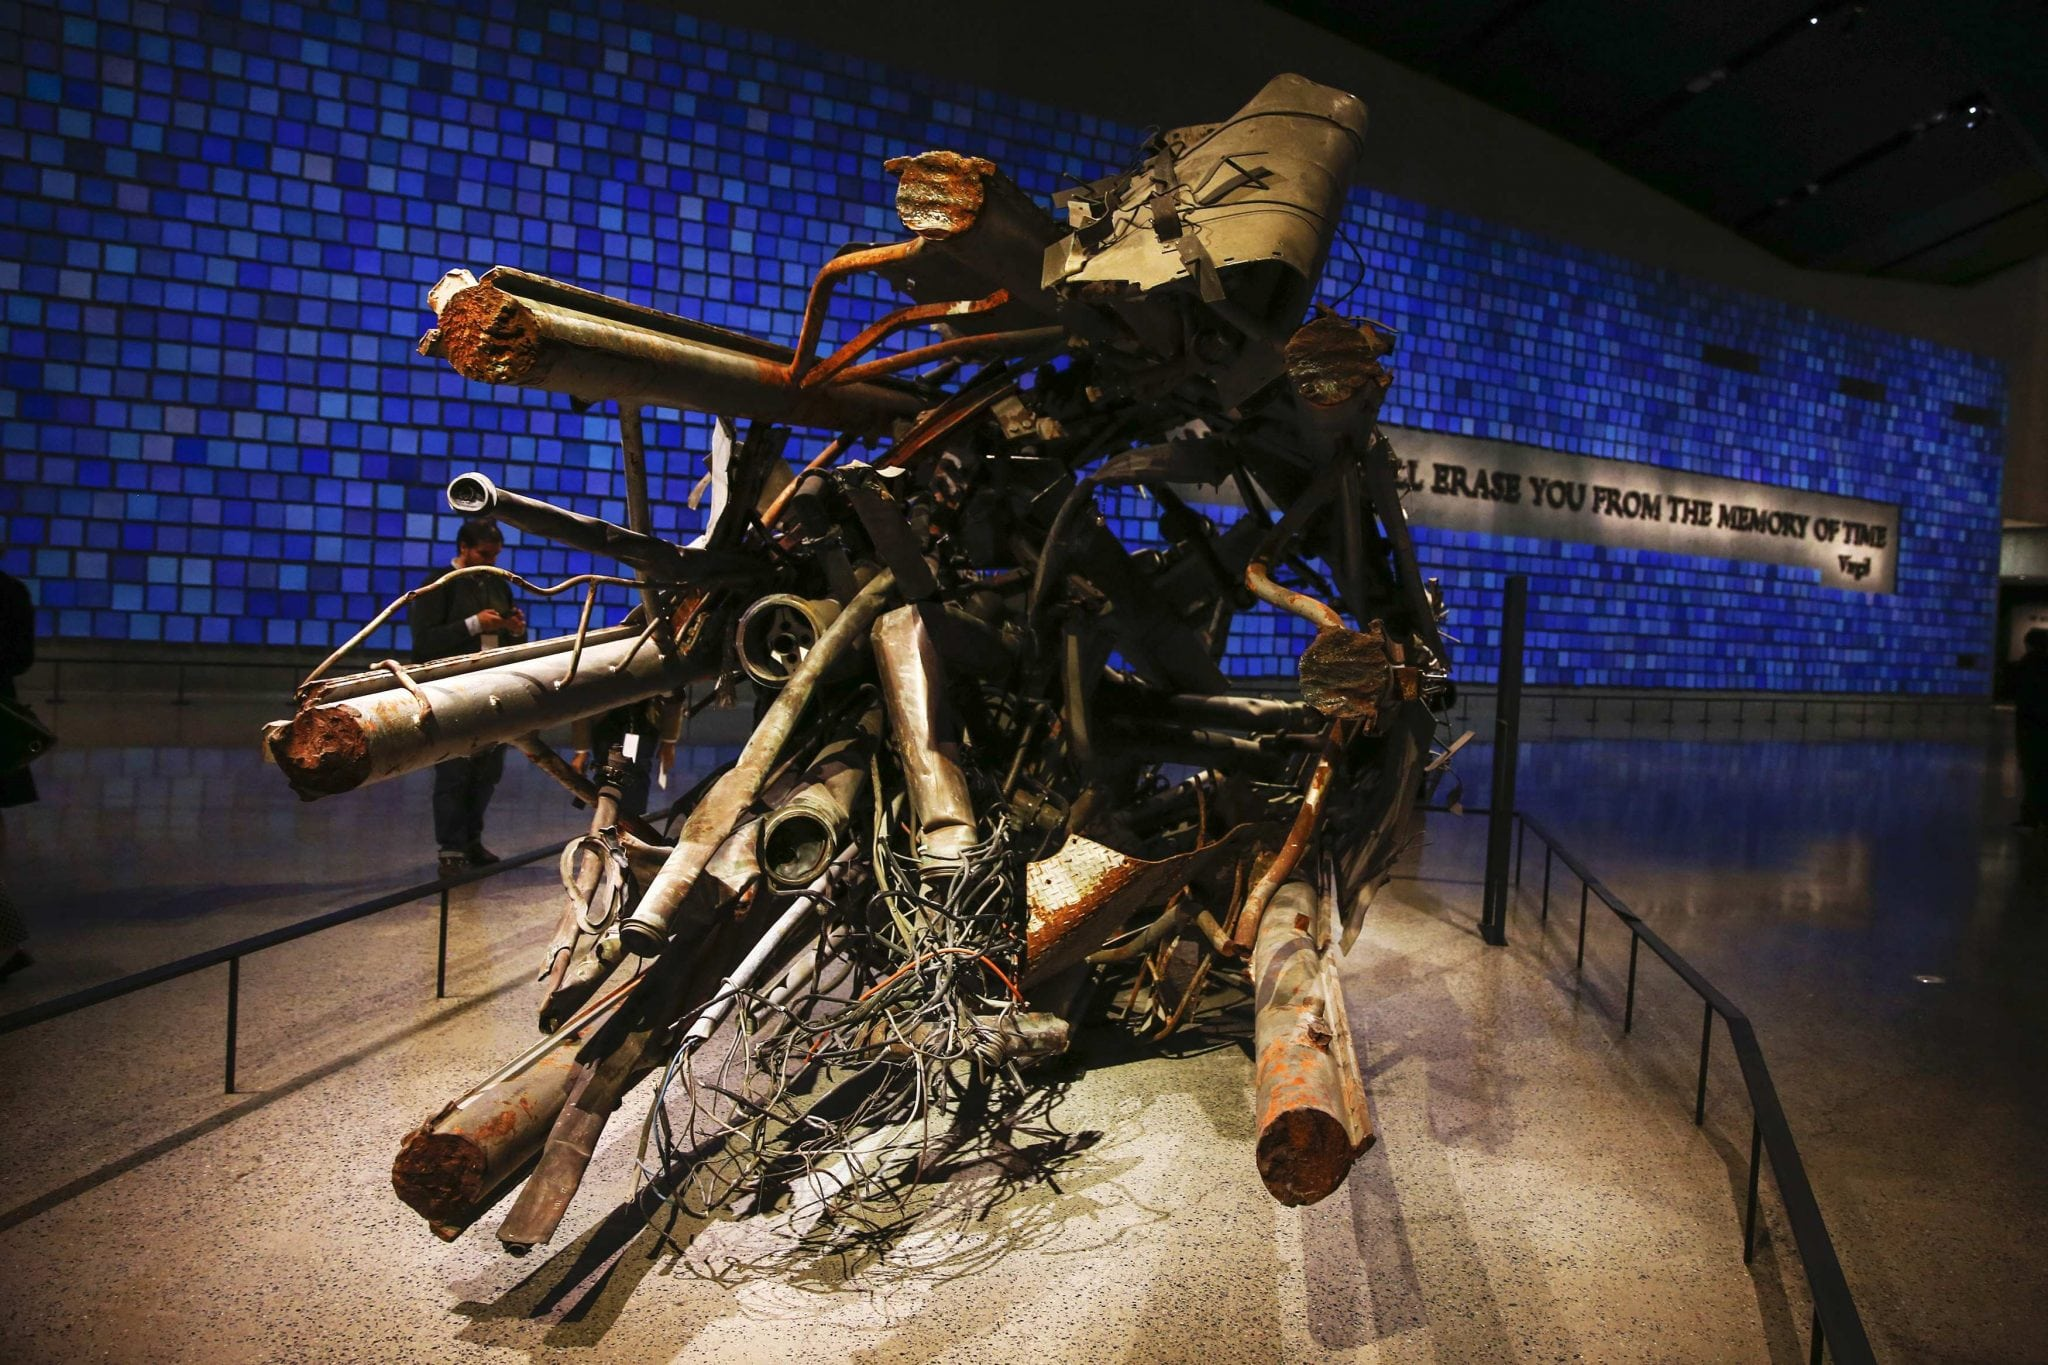 The Antenna From The North Tower Of The World Trade Center